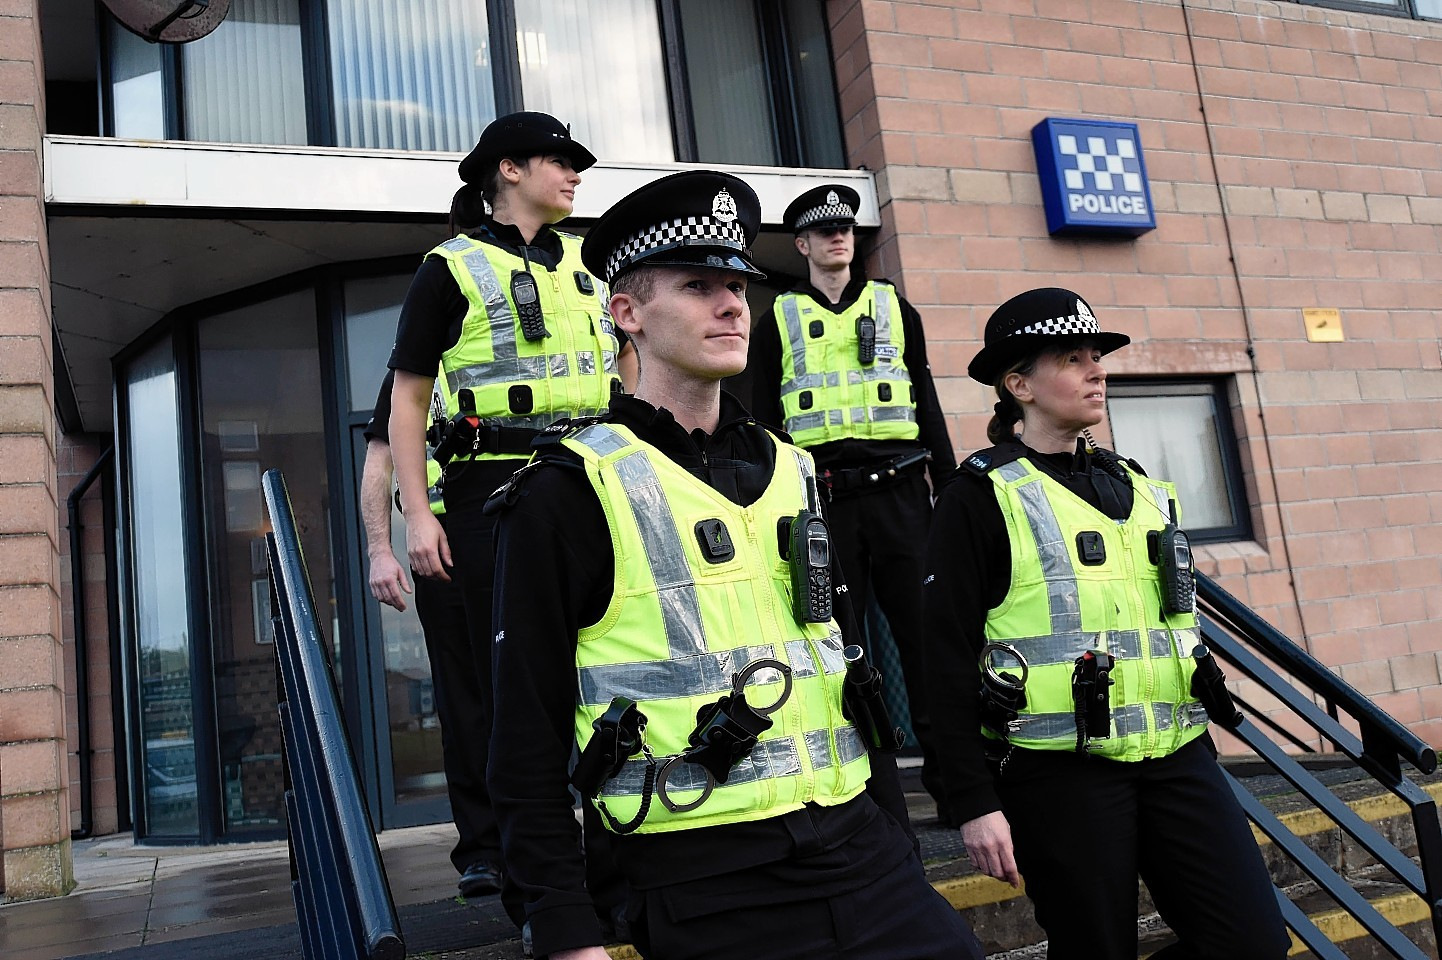 Officers at Fraserburgh Police Station taking part in the Domestic Abuse Day of Action